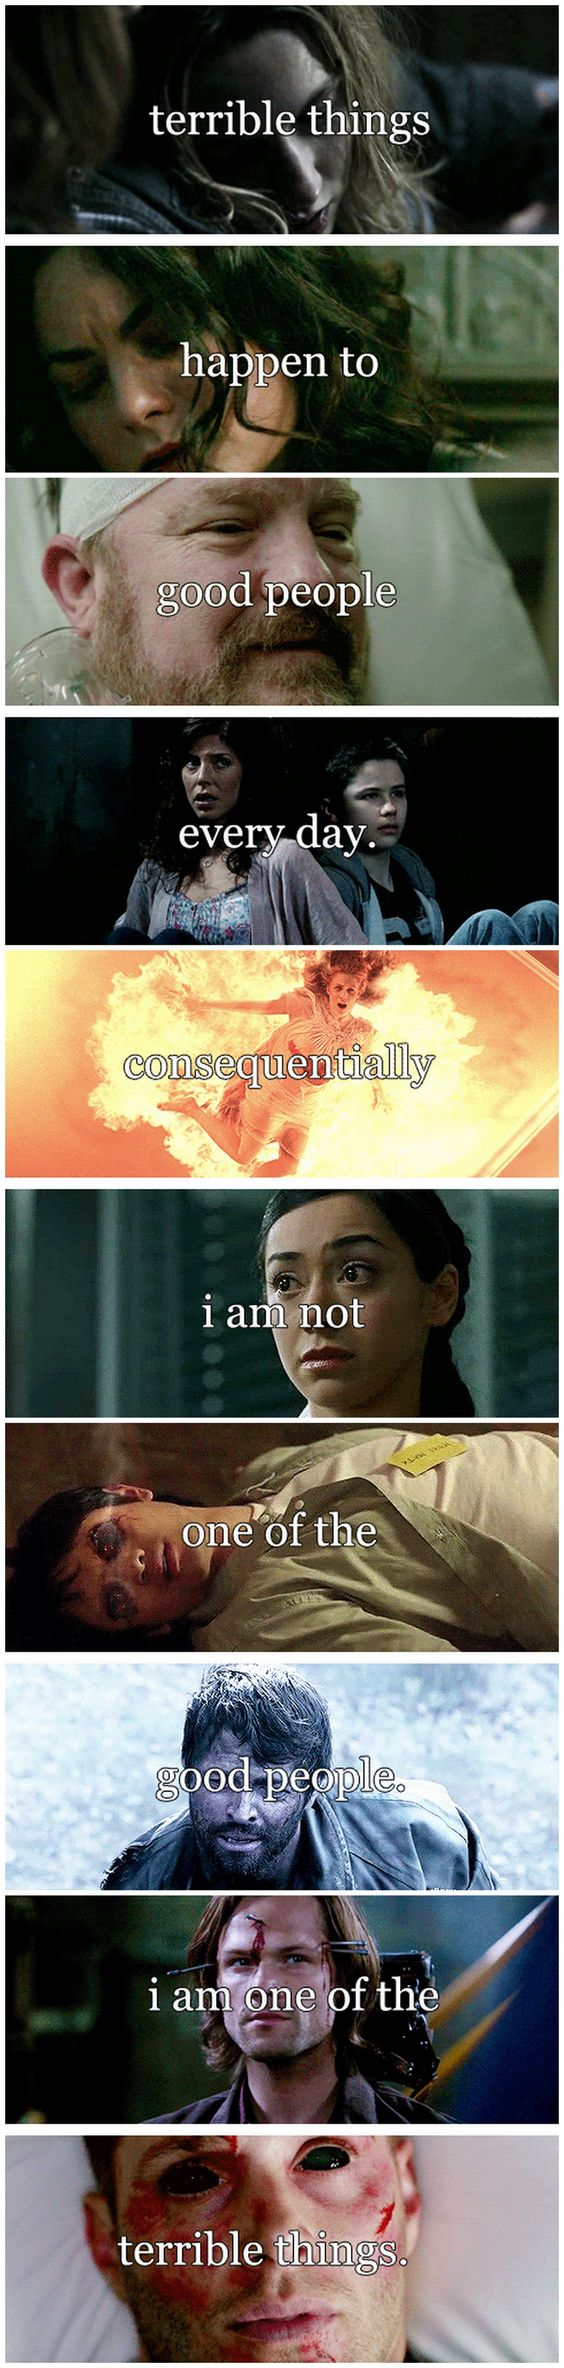 [gifset] Terrible things happen to good people every day. Consequently I am not one of the good people. I am one of the terrible things. #SPN...ugh